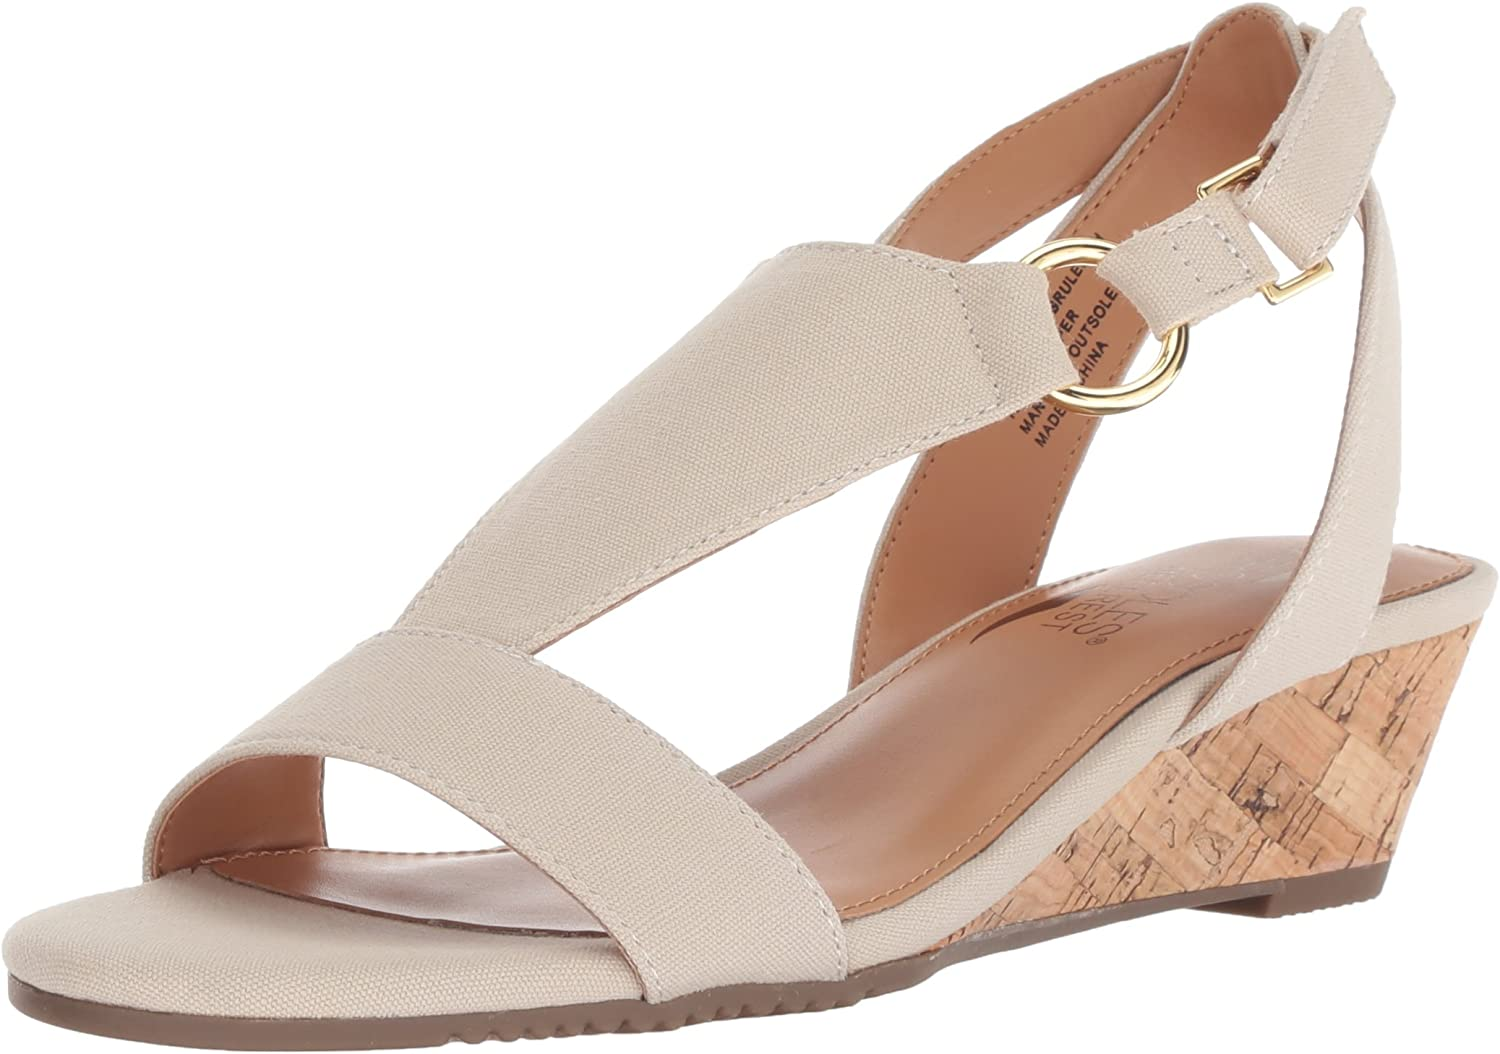 Aerosoles Womens Creme Brulee Wedge Sandal